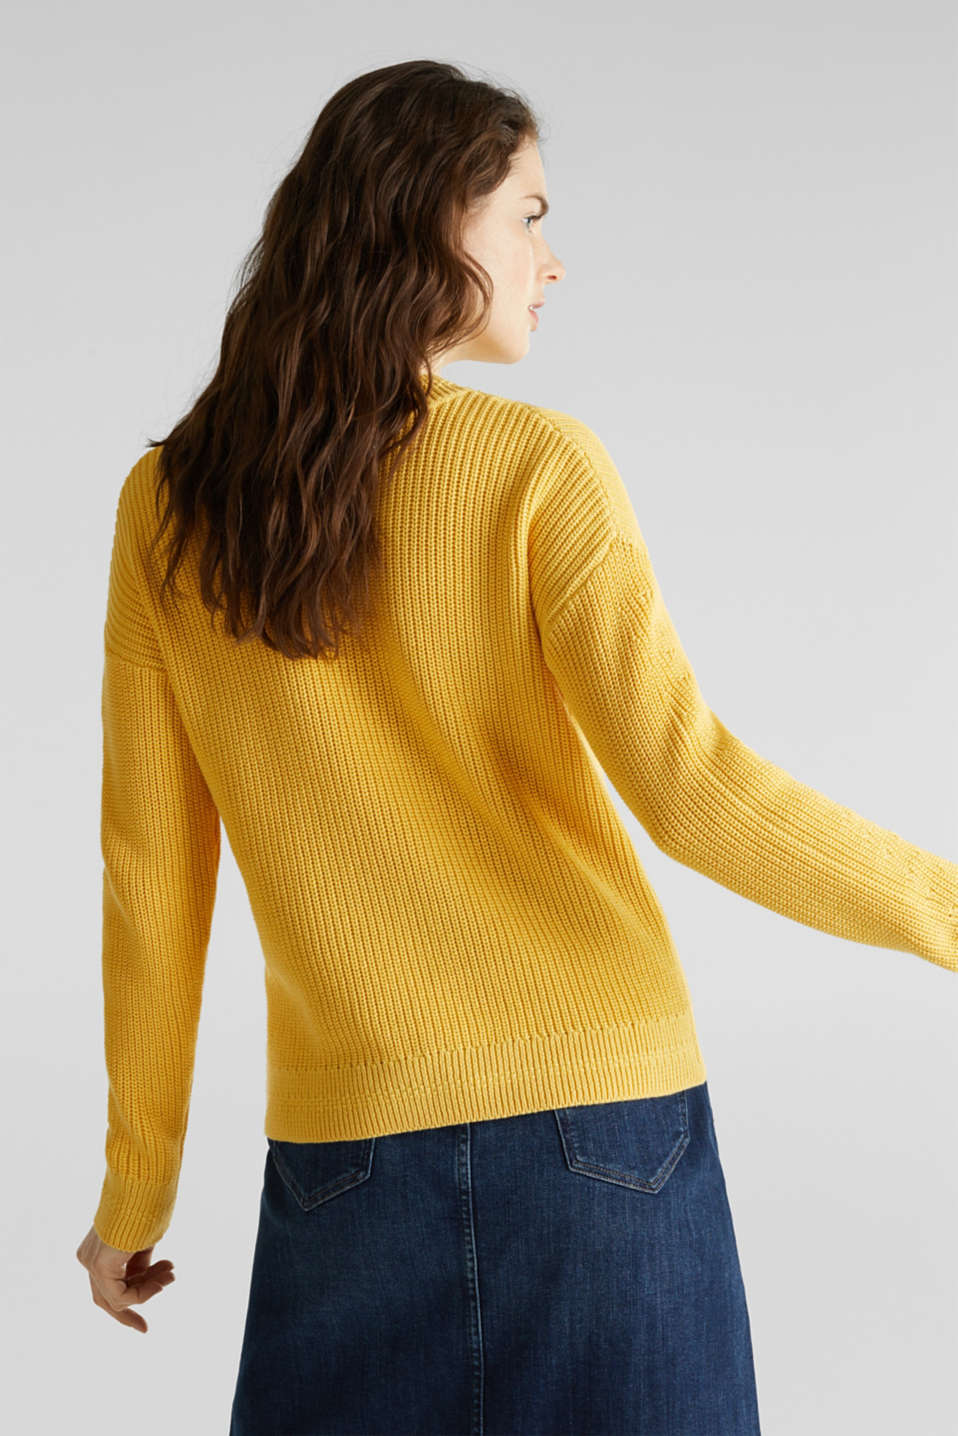 Jumper with textured details, 100% cotton, YELLOW, detail image number 2